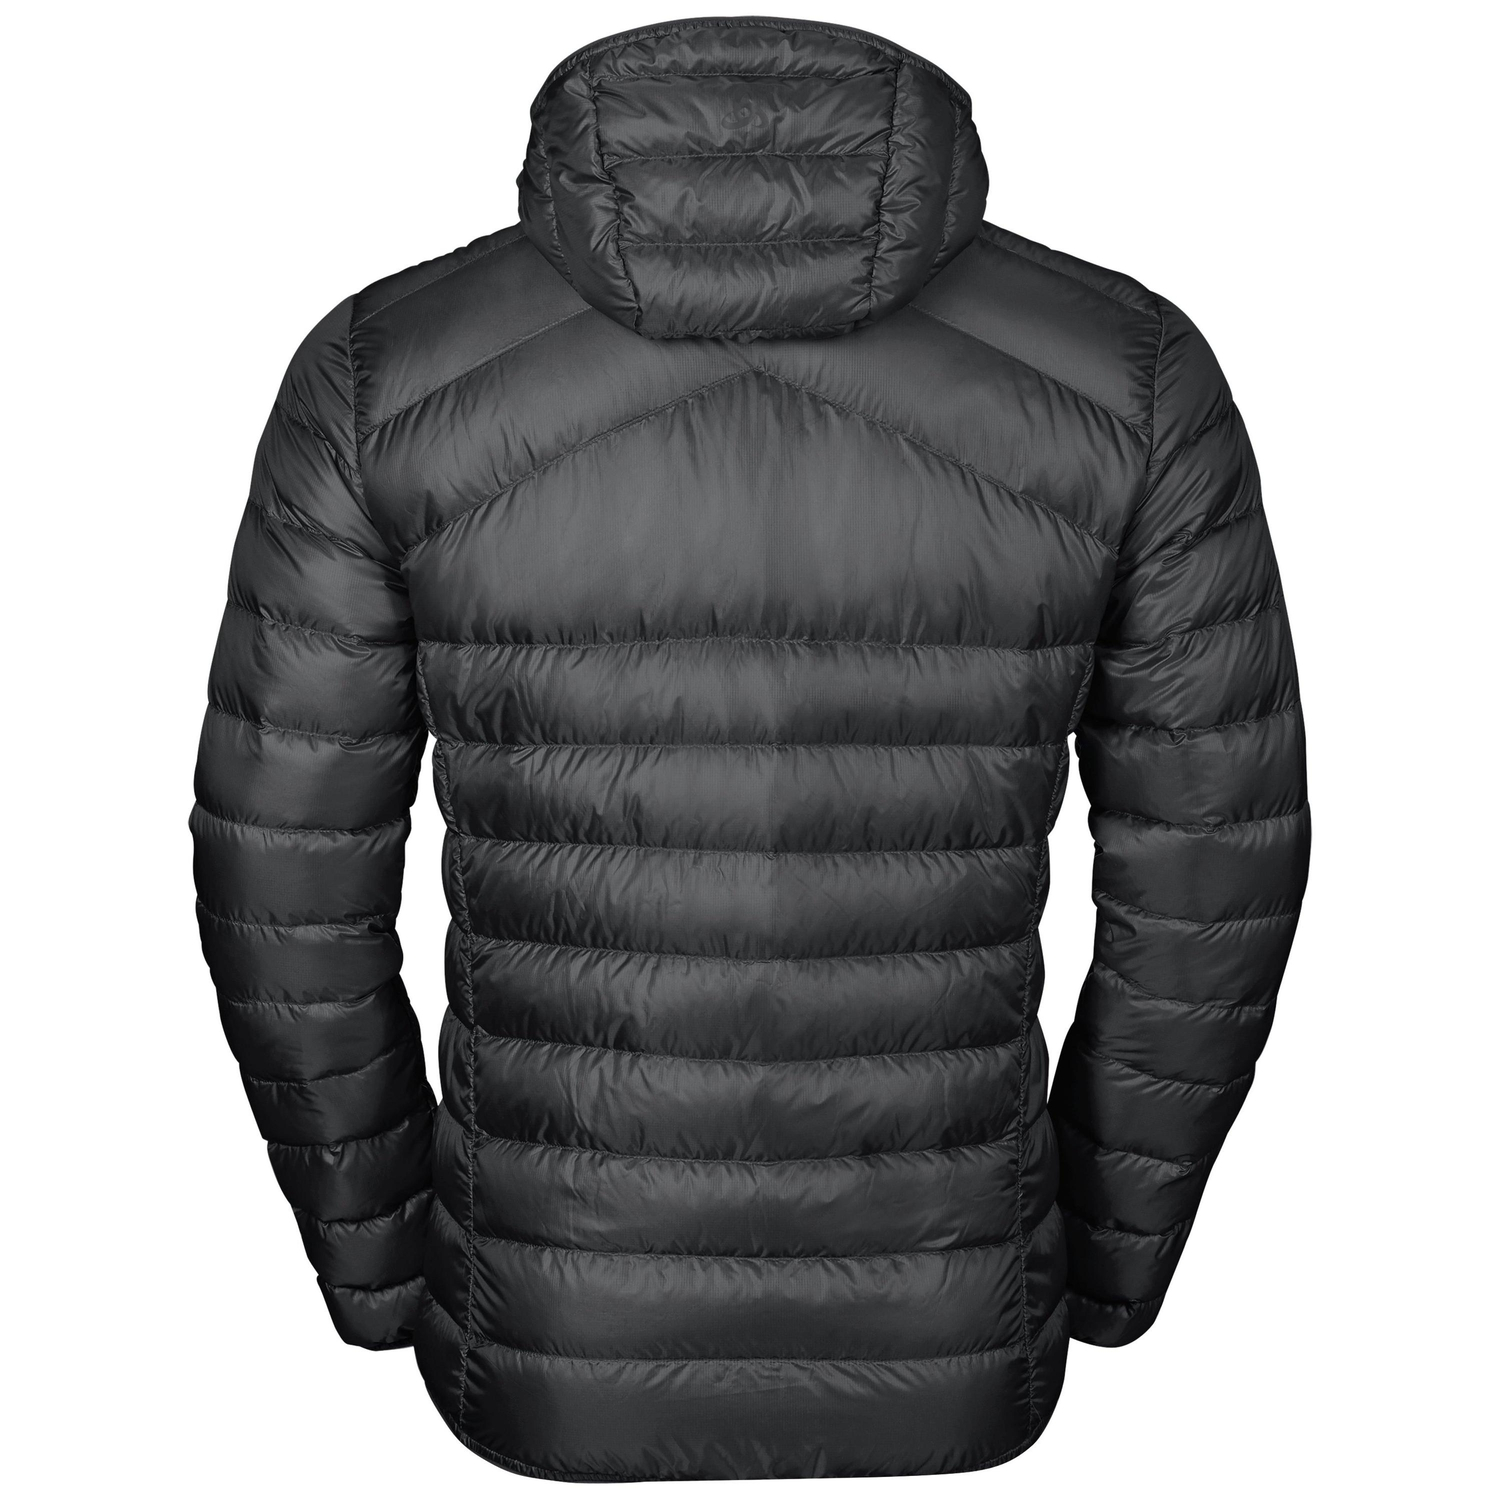 37213fa7101 Men's HOODY COCOON N-THERMIC WARM Insulated Jacket